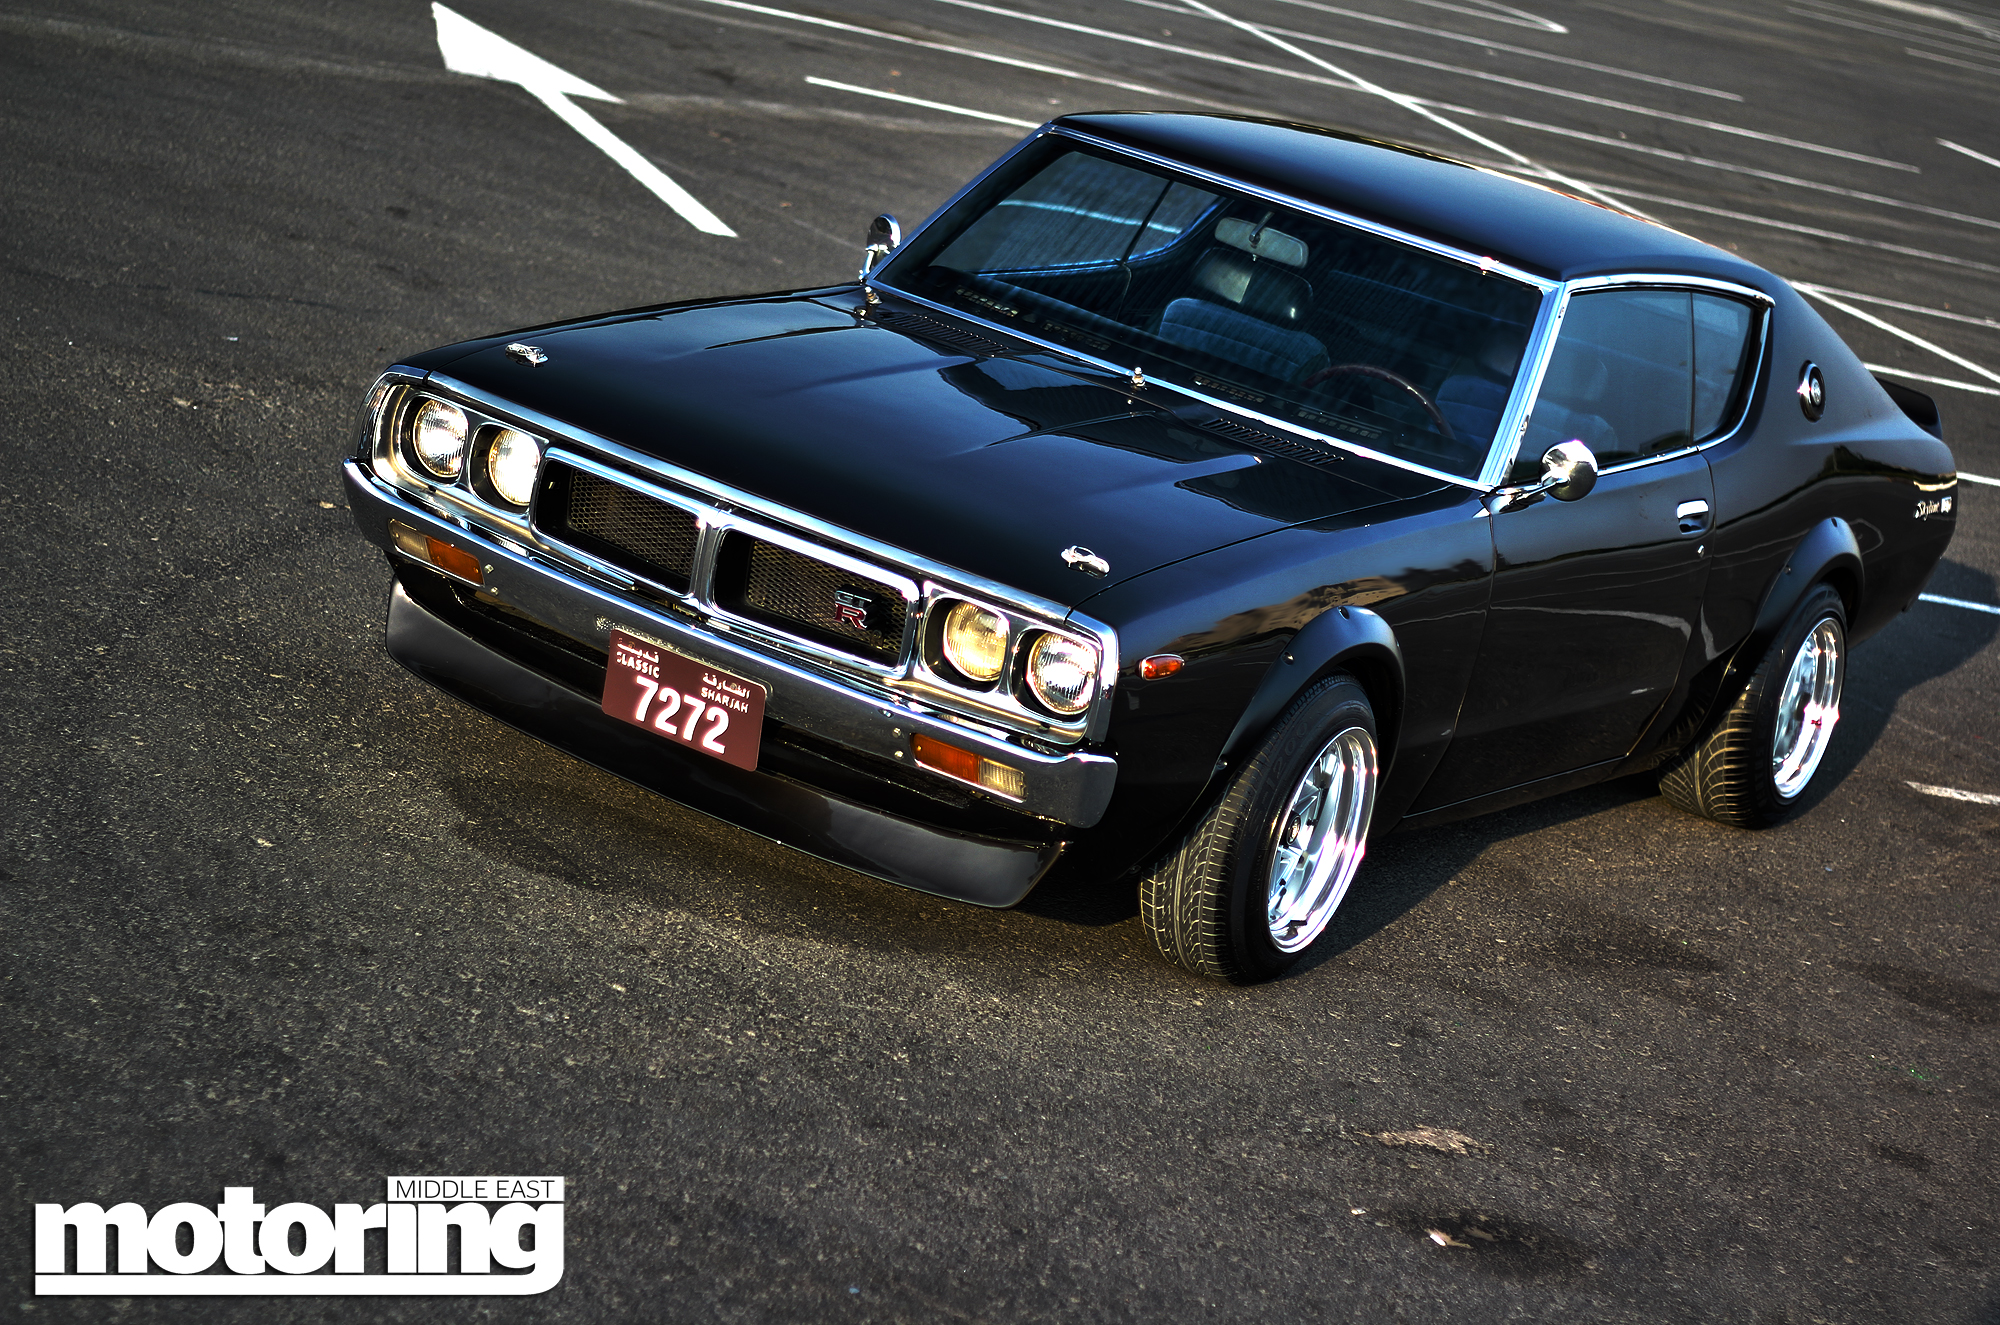 C110 2nd Generation Skyline Gt R Motoring Middle East Car News Reviews And Buying Guidesmotoring Middle East Car News Reviews And Buying Guides